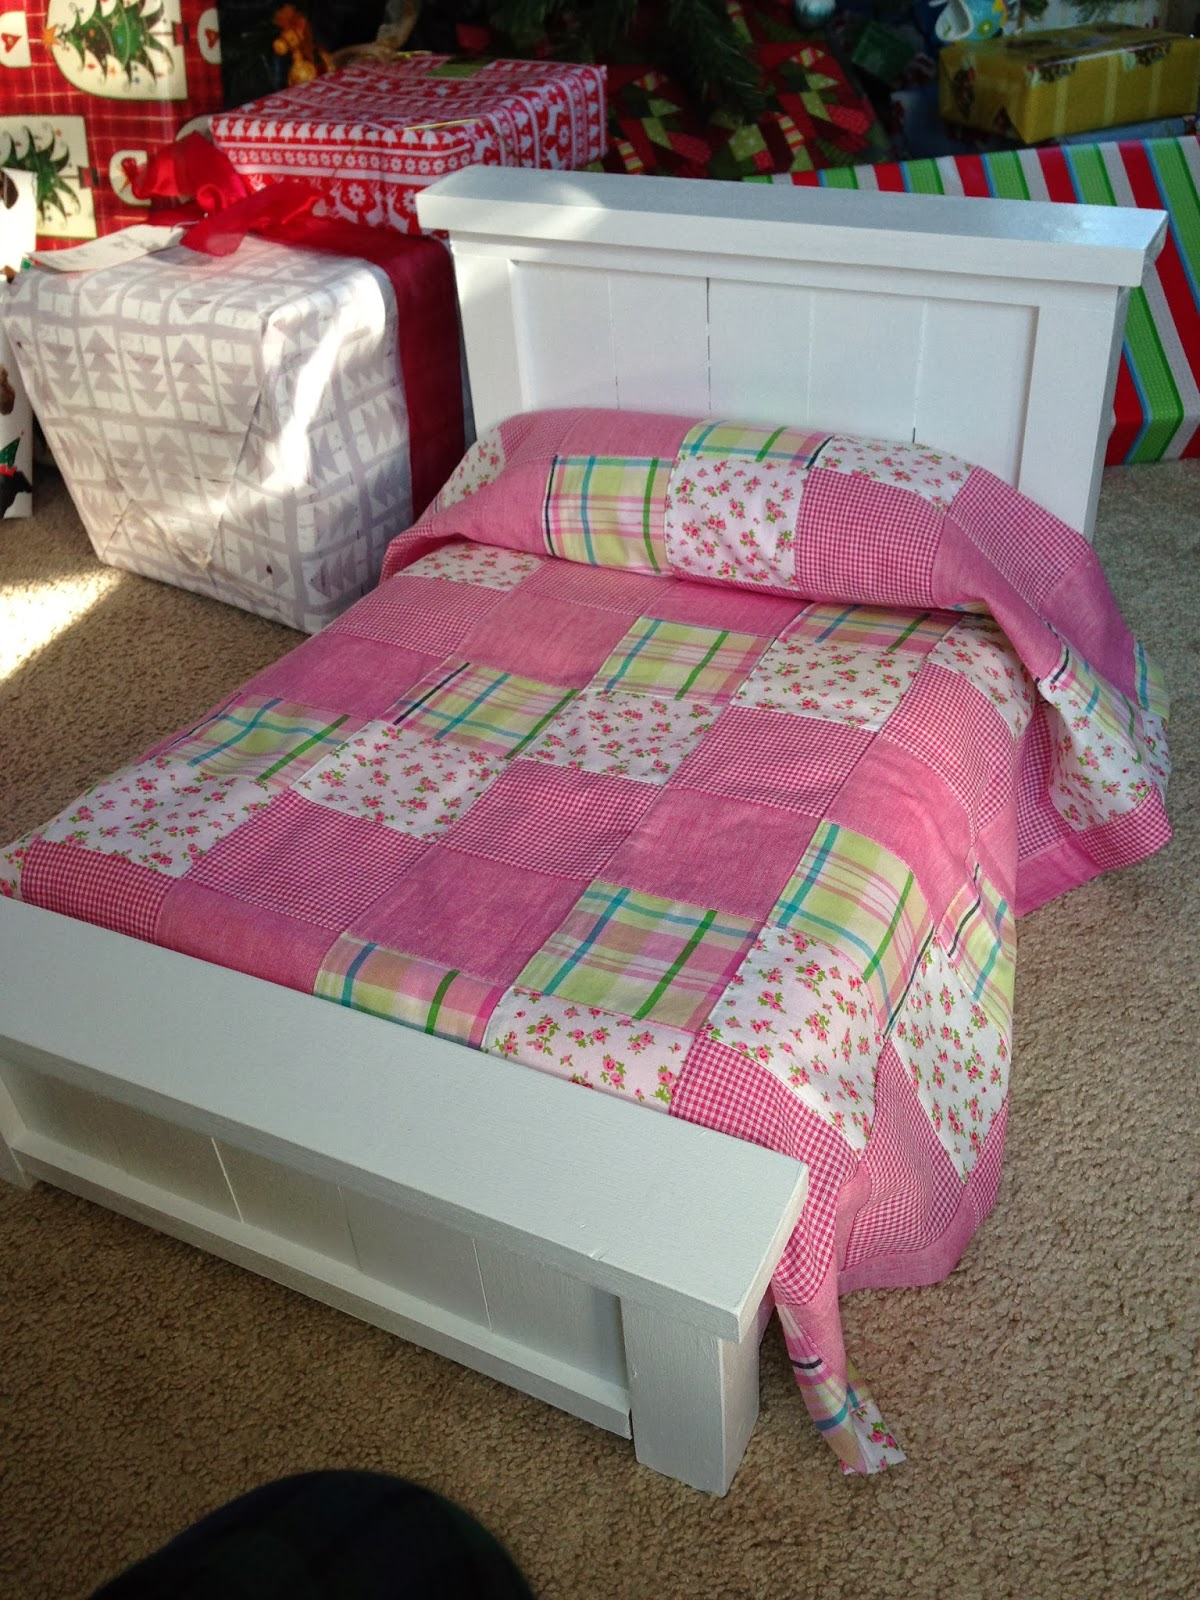 Celtic Heart Knitting And Quilting American Girl Doll Bed